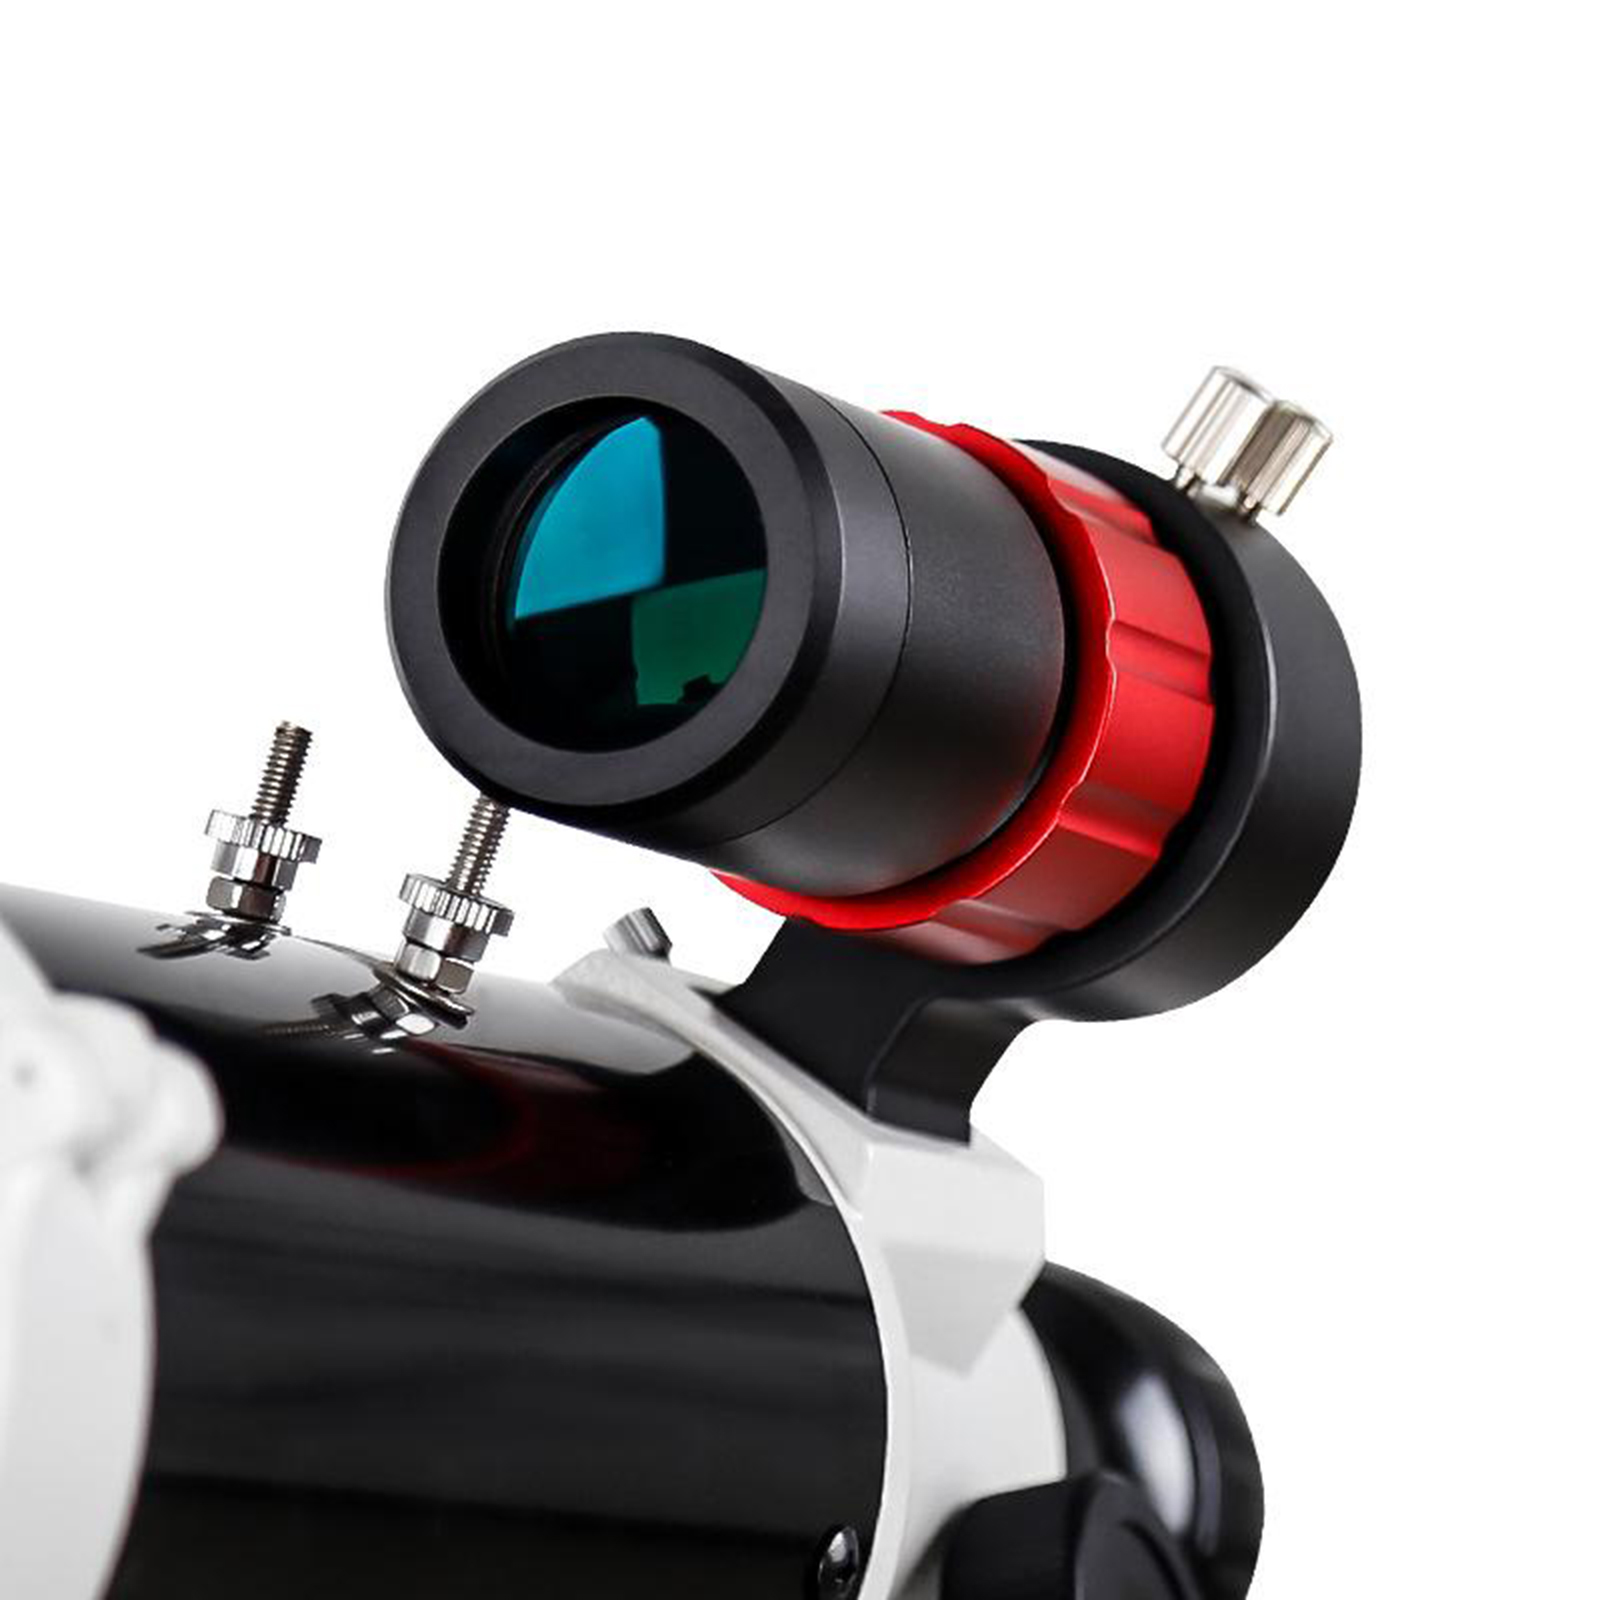 Tools : Finderscope Lightweight Durable 32mm Focuser Guide Scope Finderscope With Bracket for Astronomical Telescope